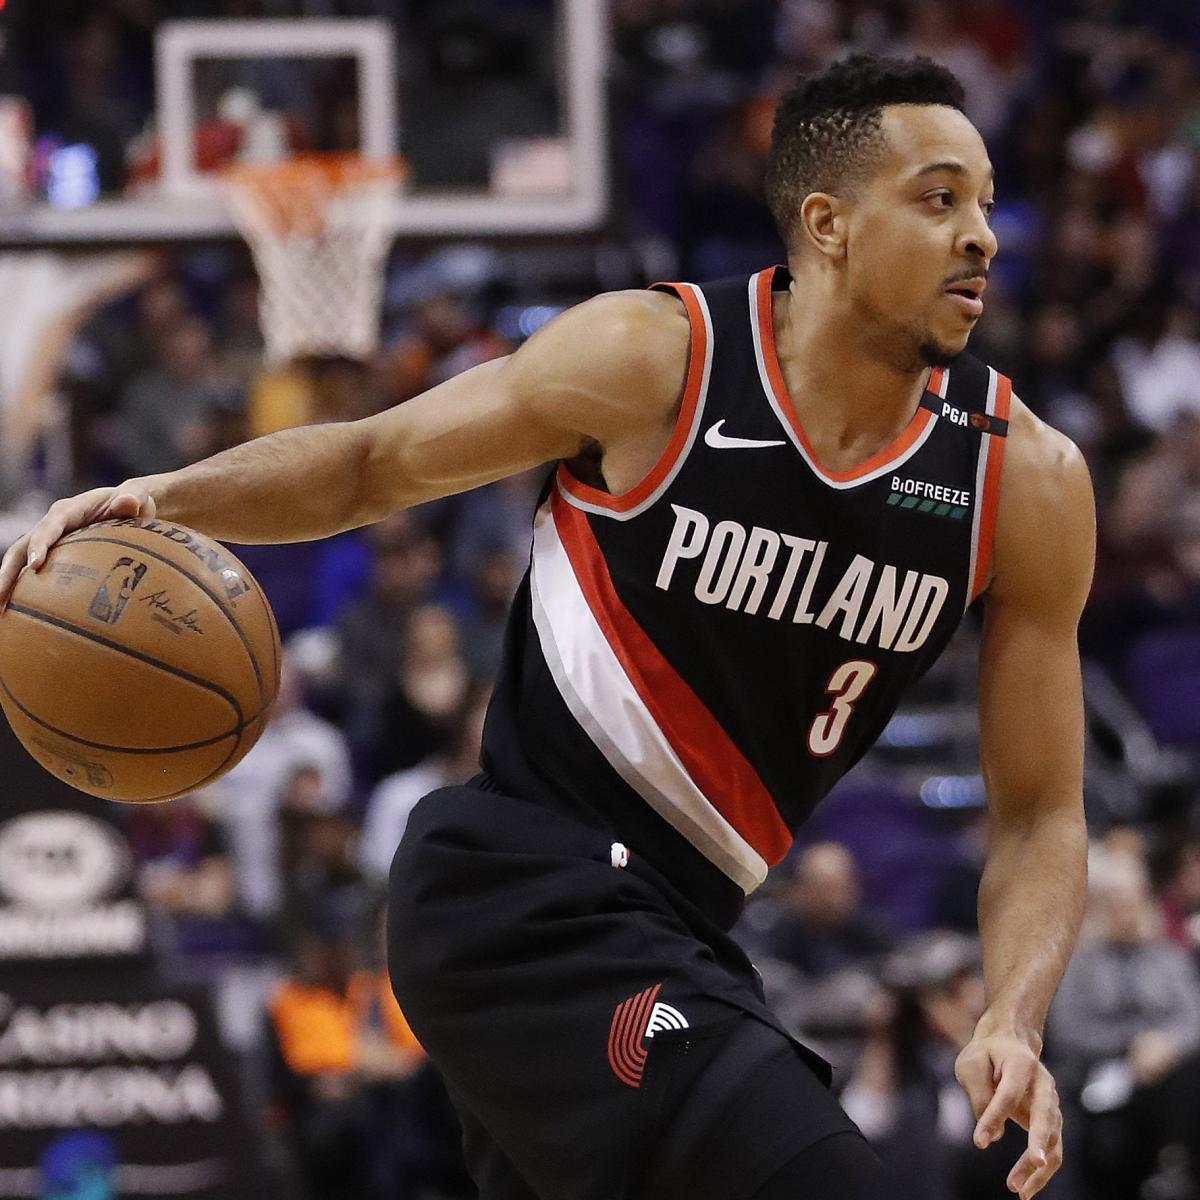 Utah Jazz Vs. Portland Trail Blazers Odds, Analysis, NBA